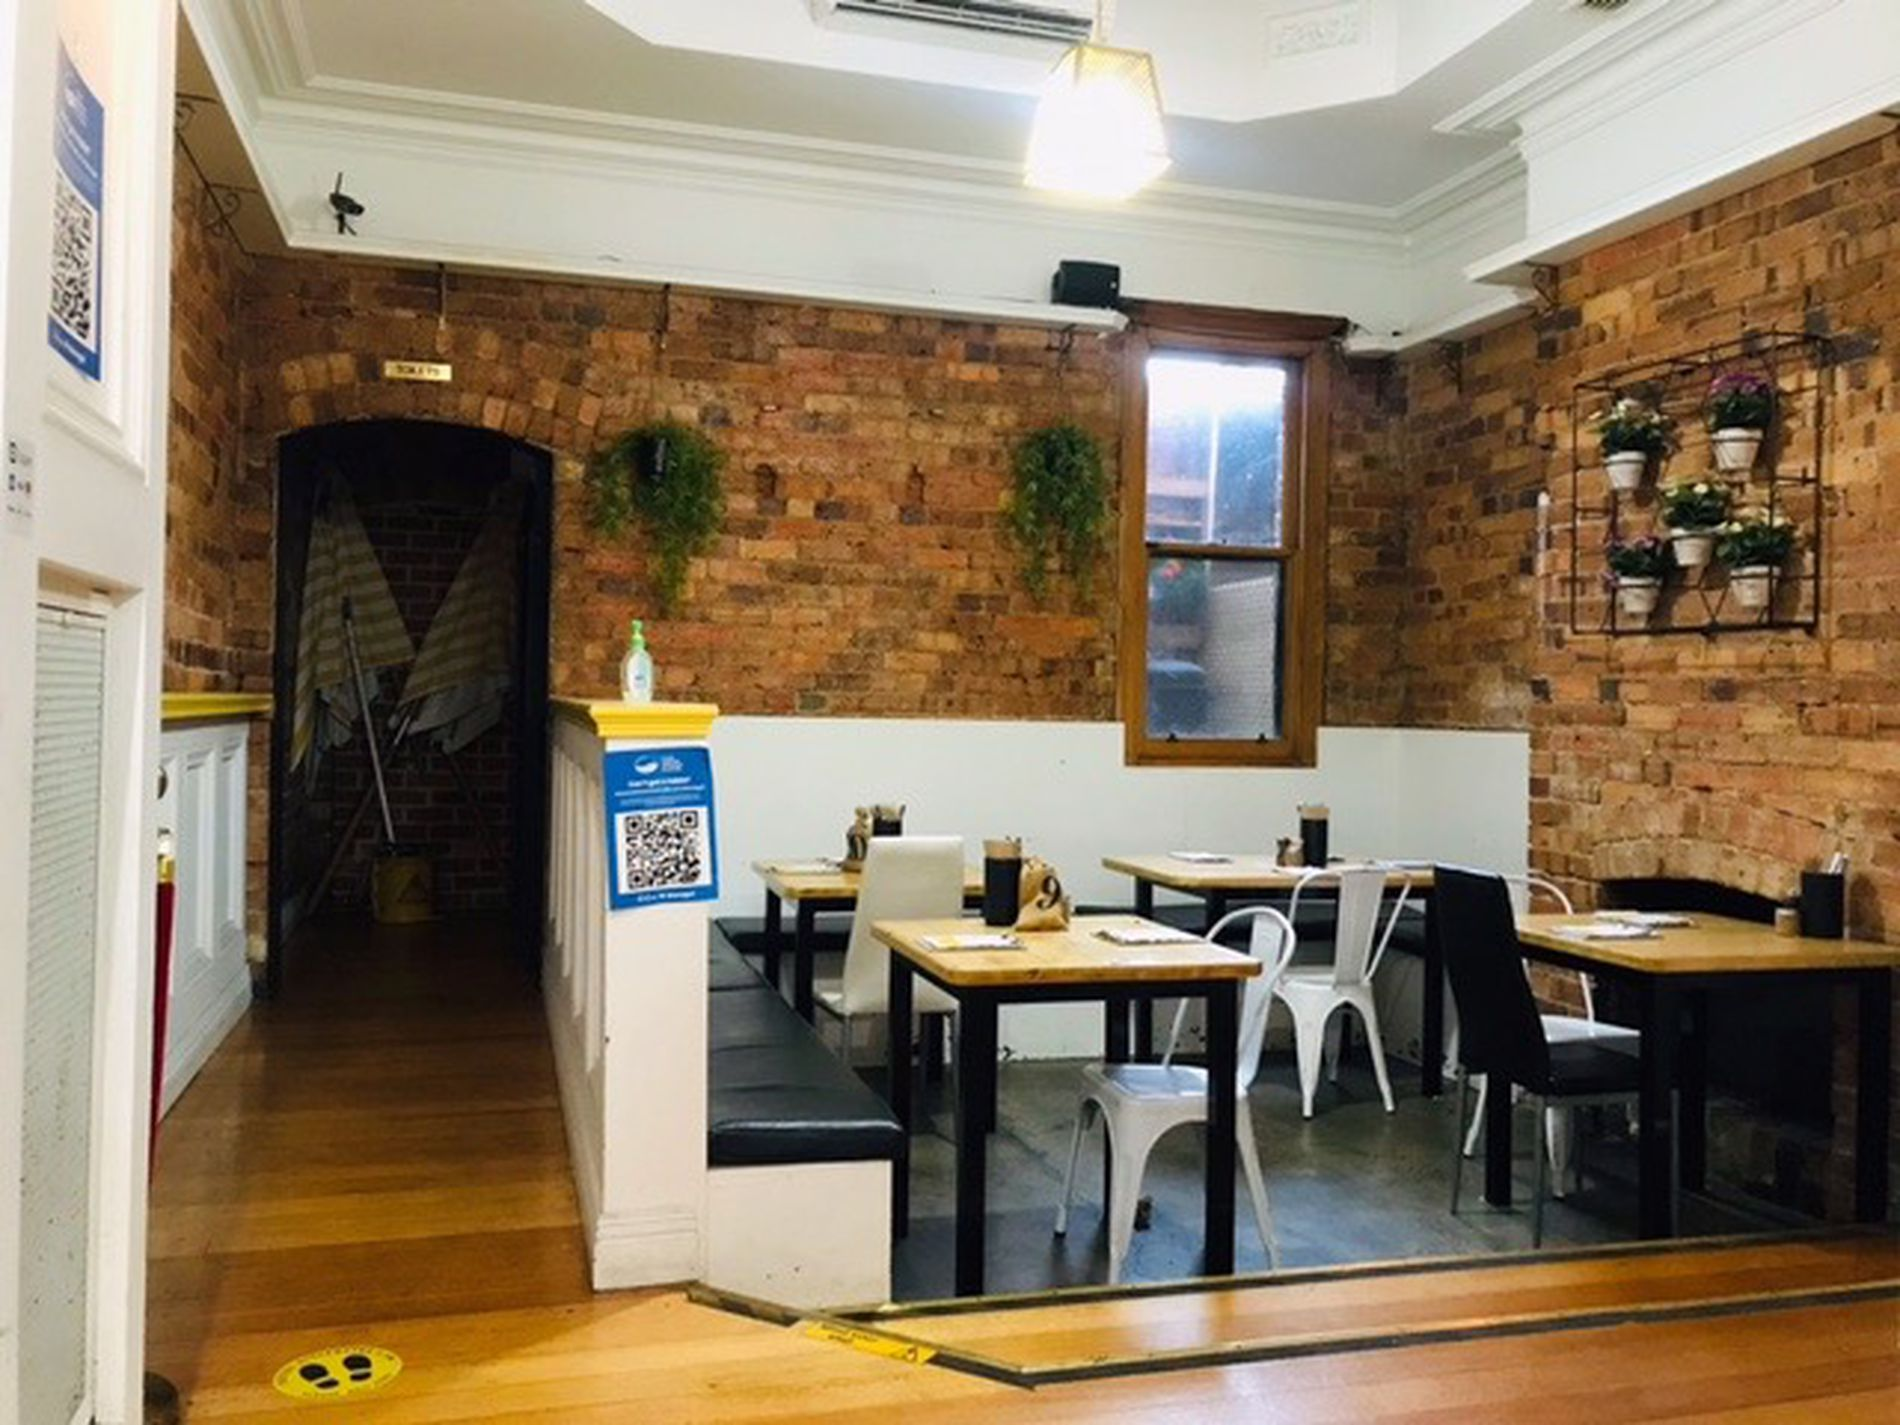 Cafe, Bar and Takeaway Business for Sale West Gippsland